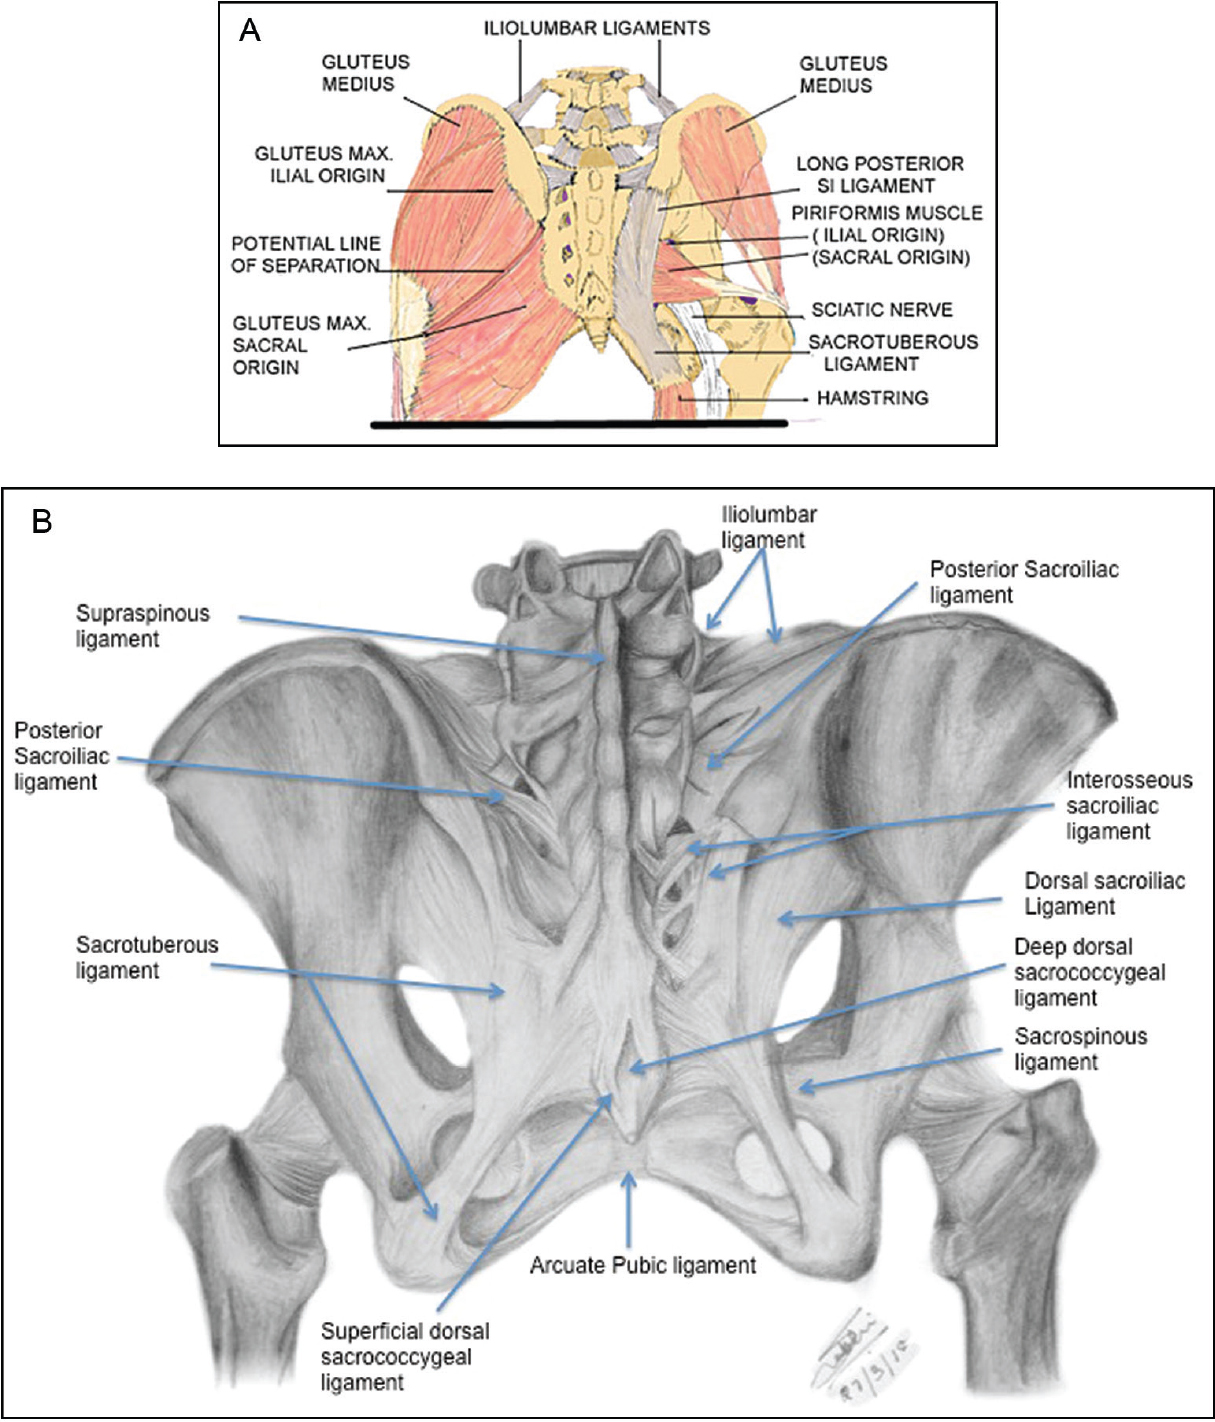 Sacroiliac Joint A Review Tilvawala K Kothari K Patel R Indian